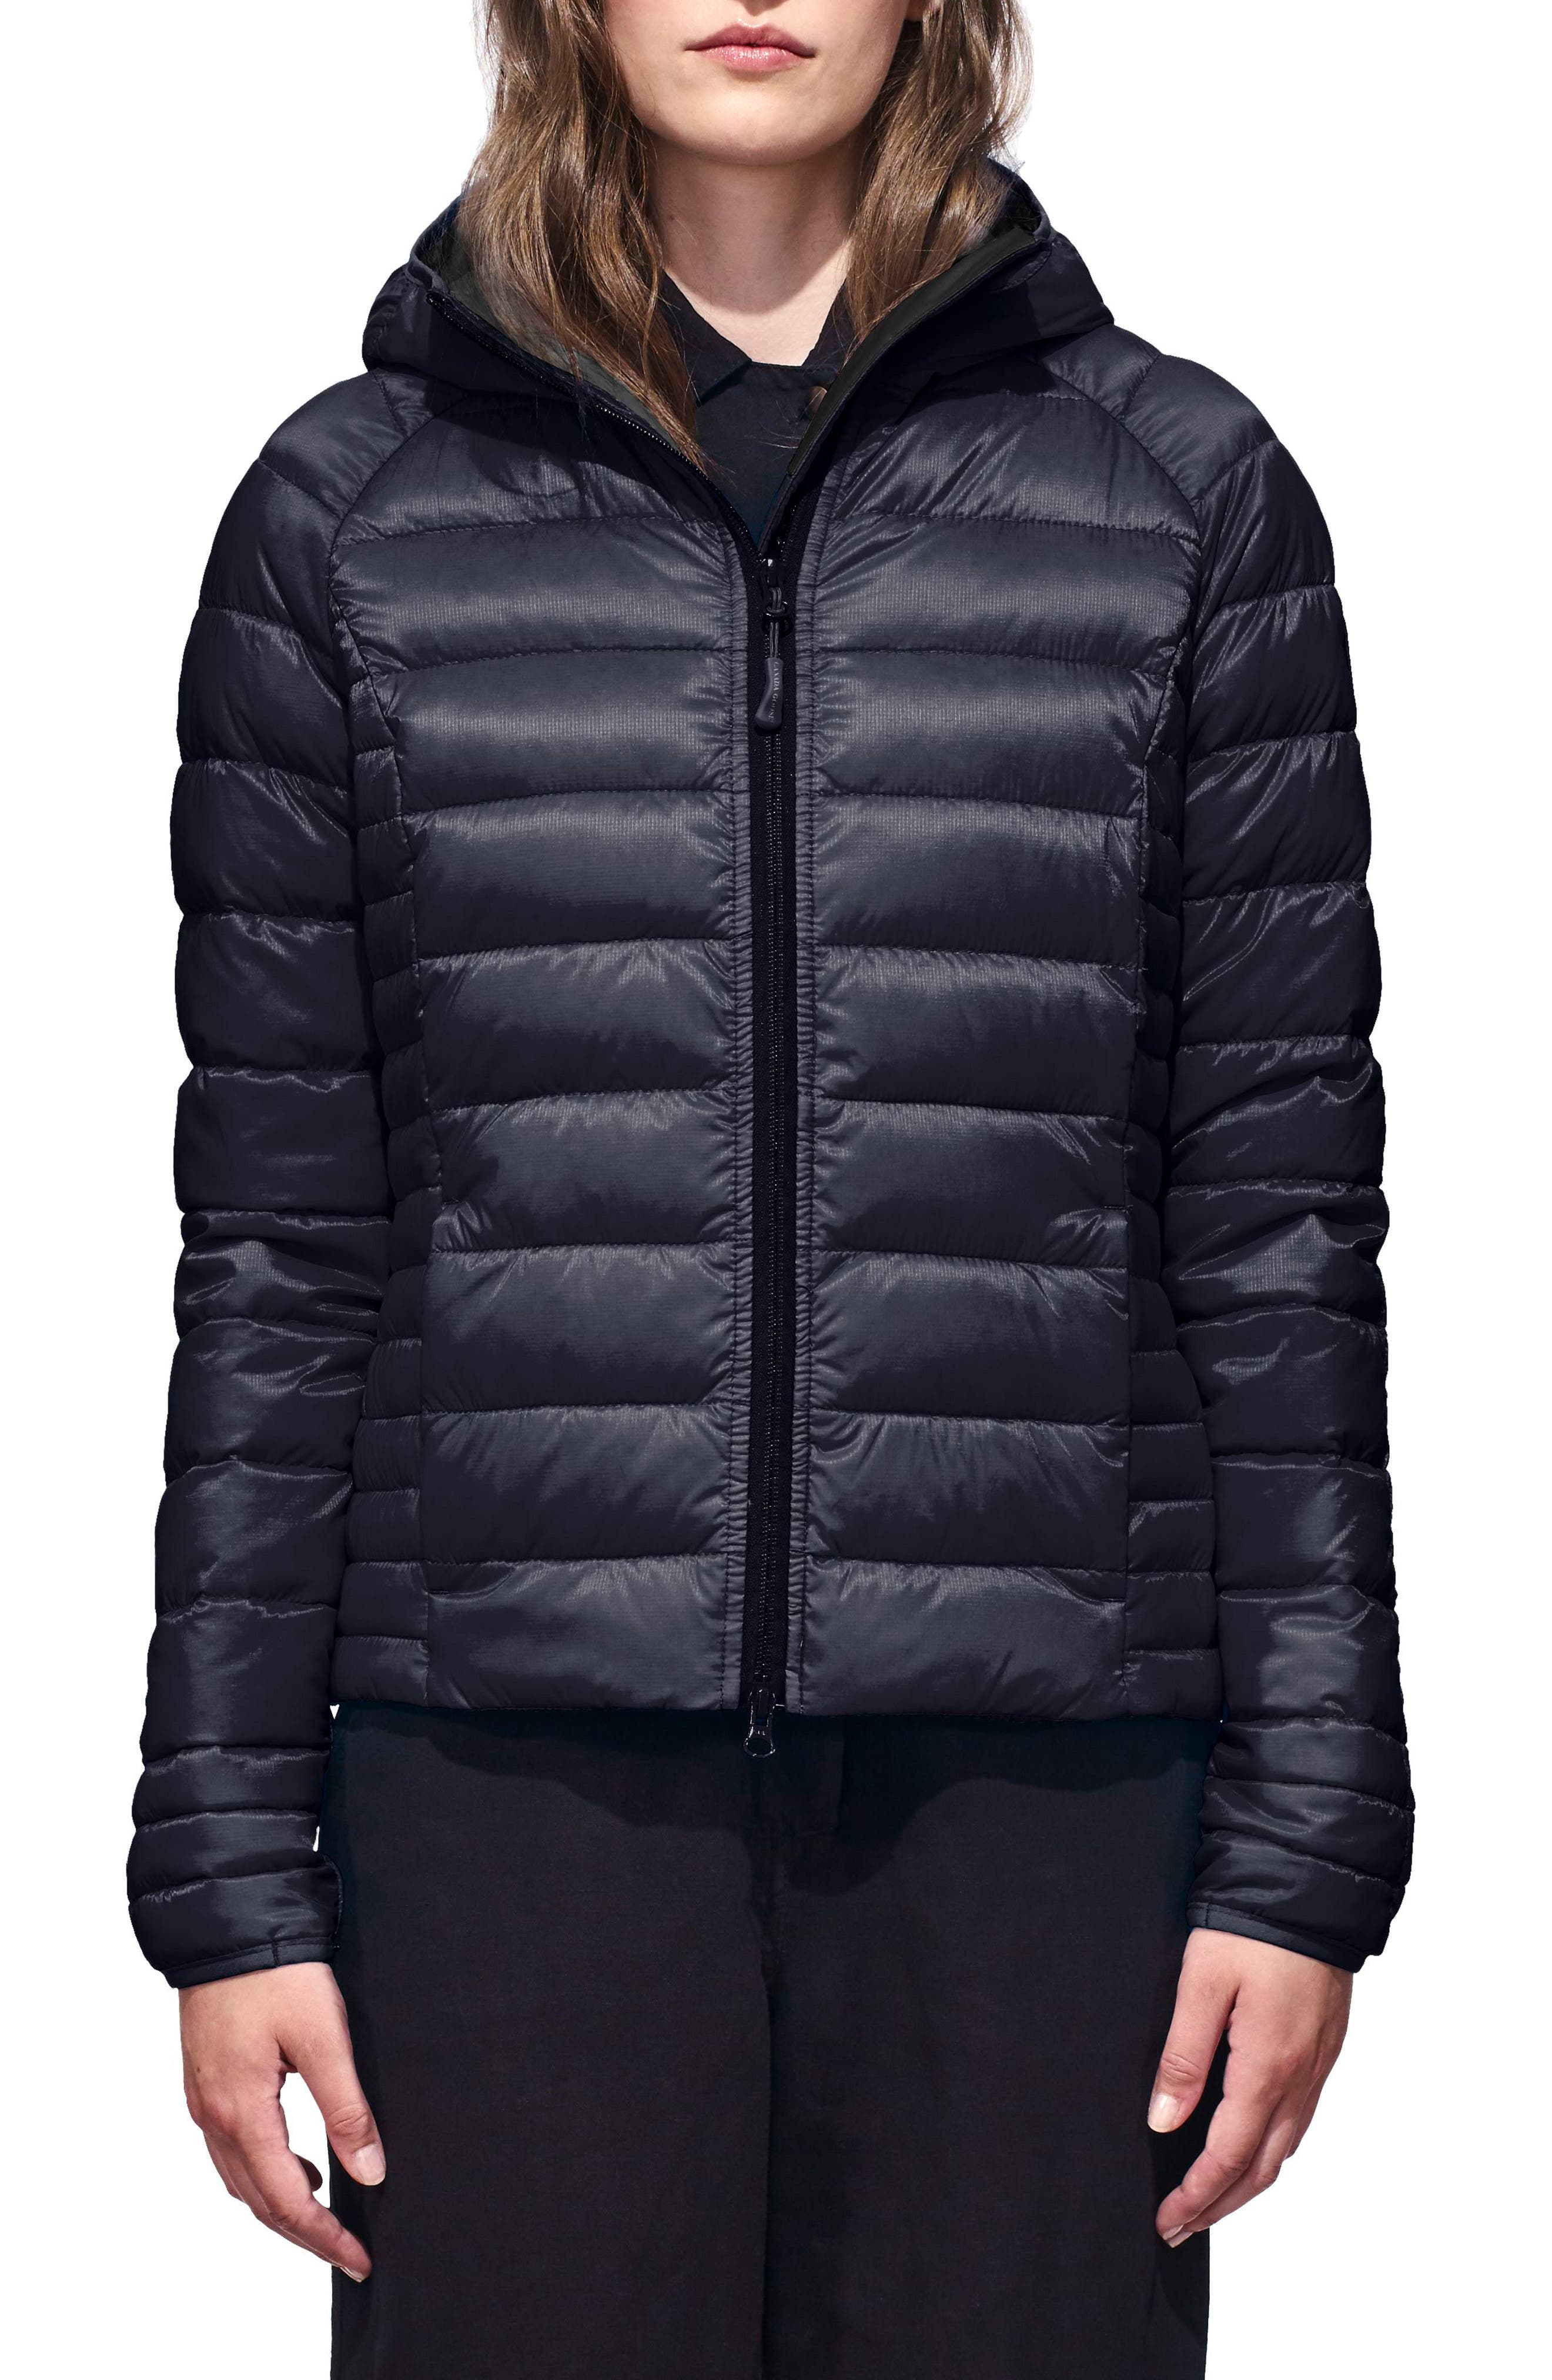 'Brookvale' Packable Hooded Quilted Down Jacket,                         Main,                         color, ADMIRAL BLUE/ BLACK